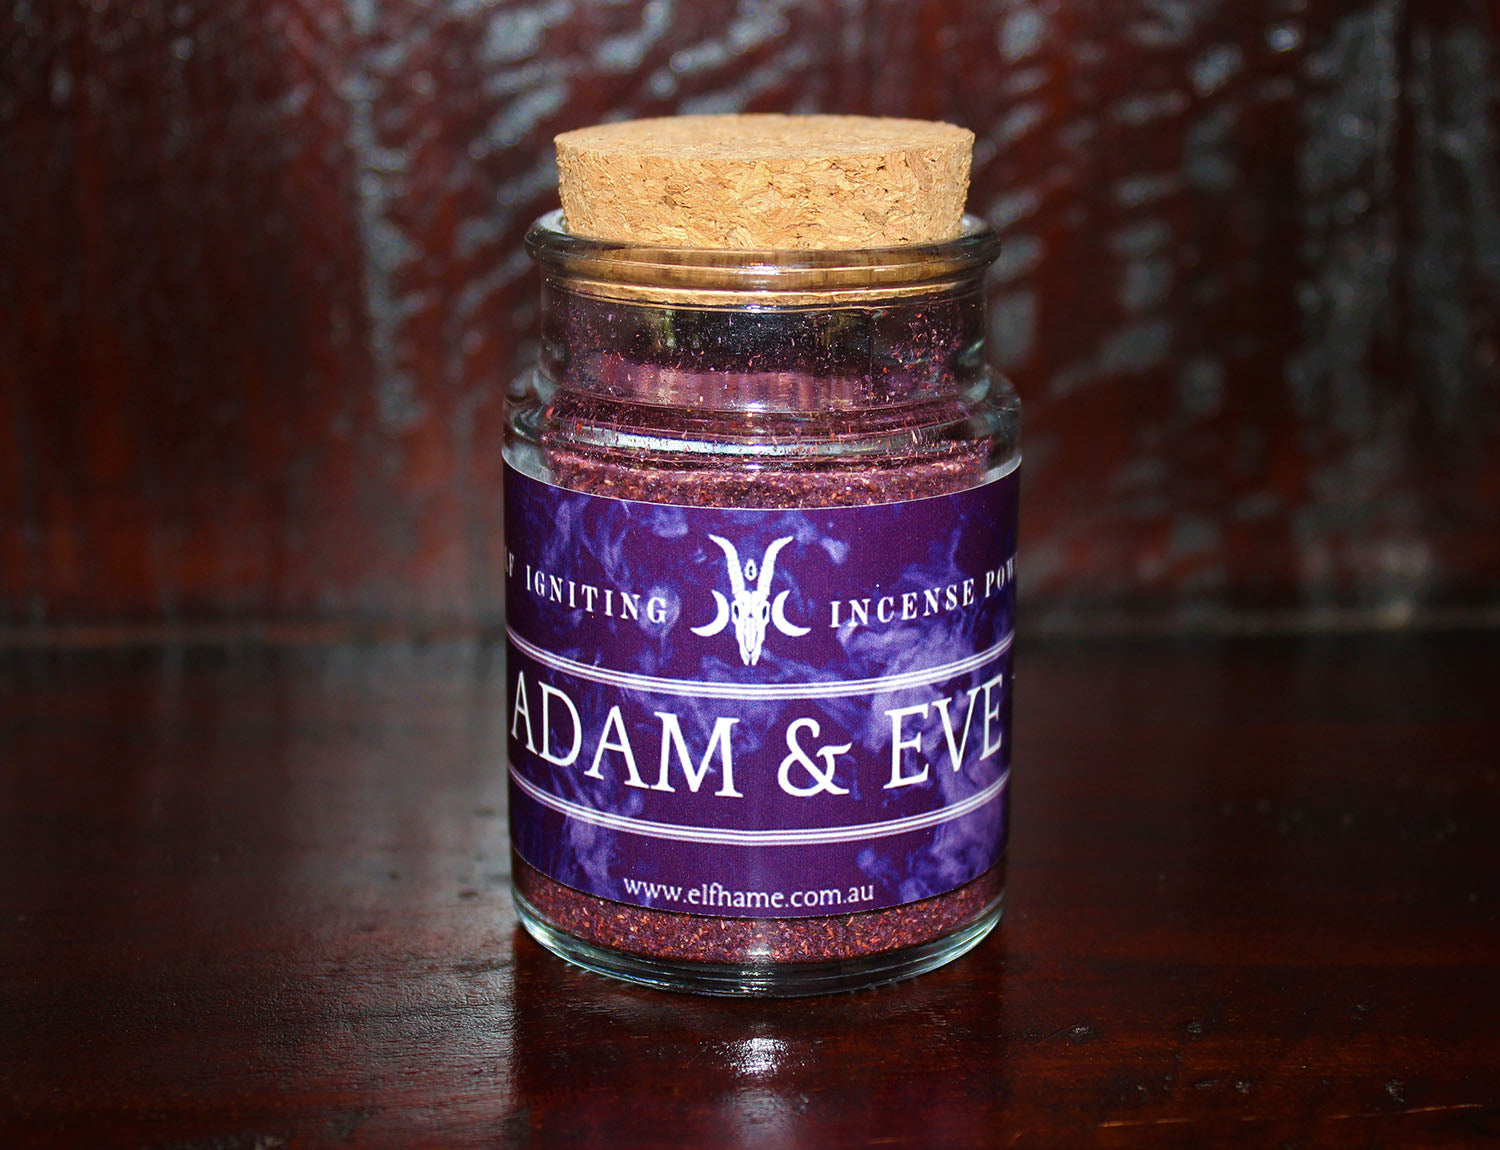 Adam & Eve, Incense Powder